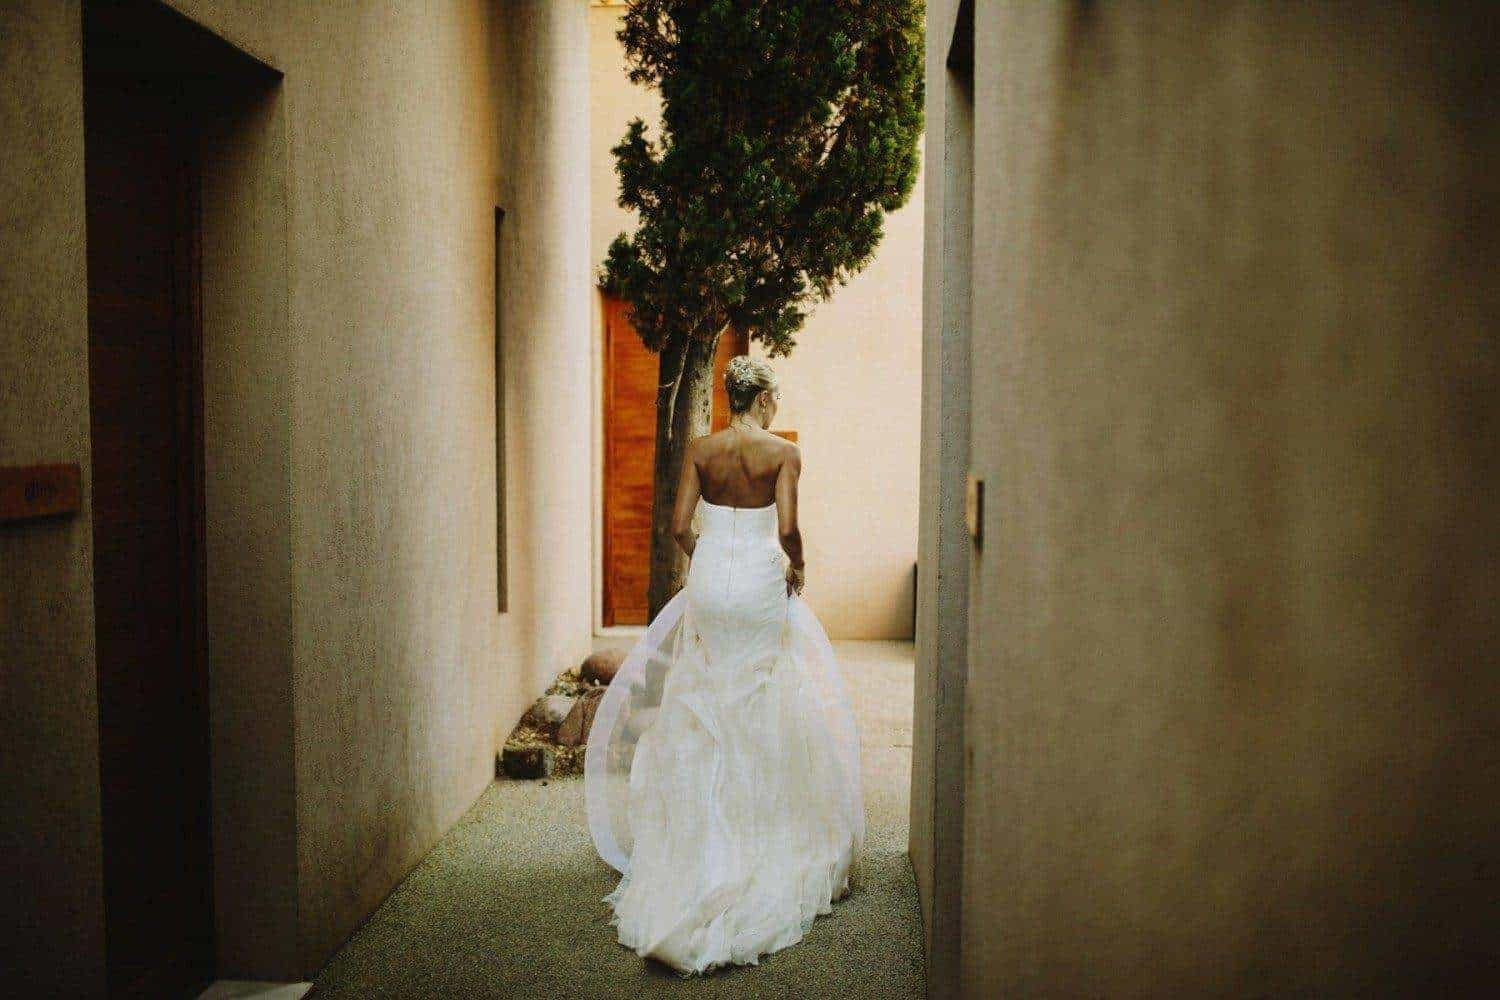 005-best-wedding-photographer-adam-alex-wedding-photographer